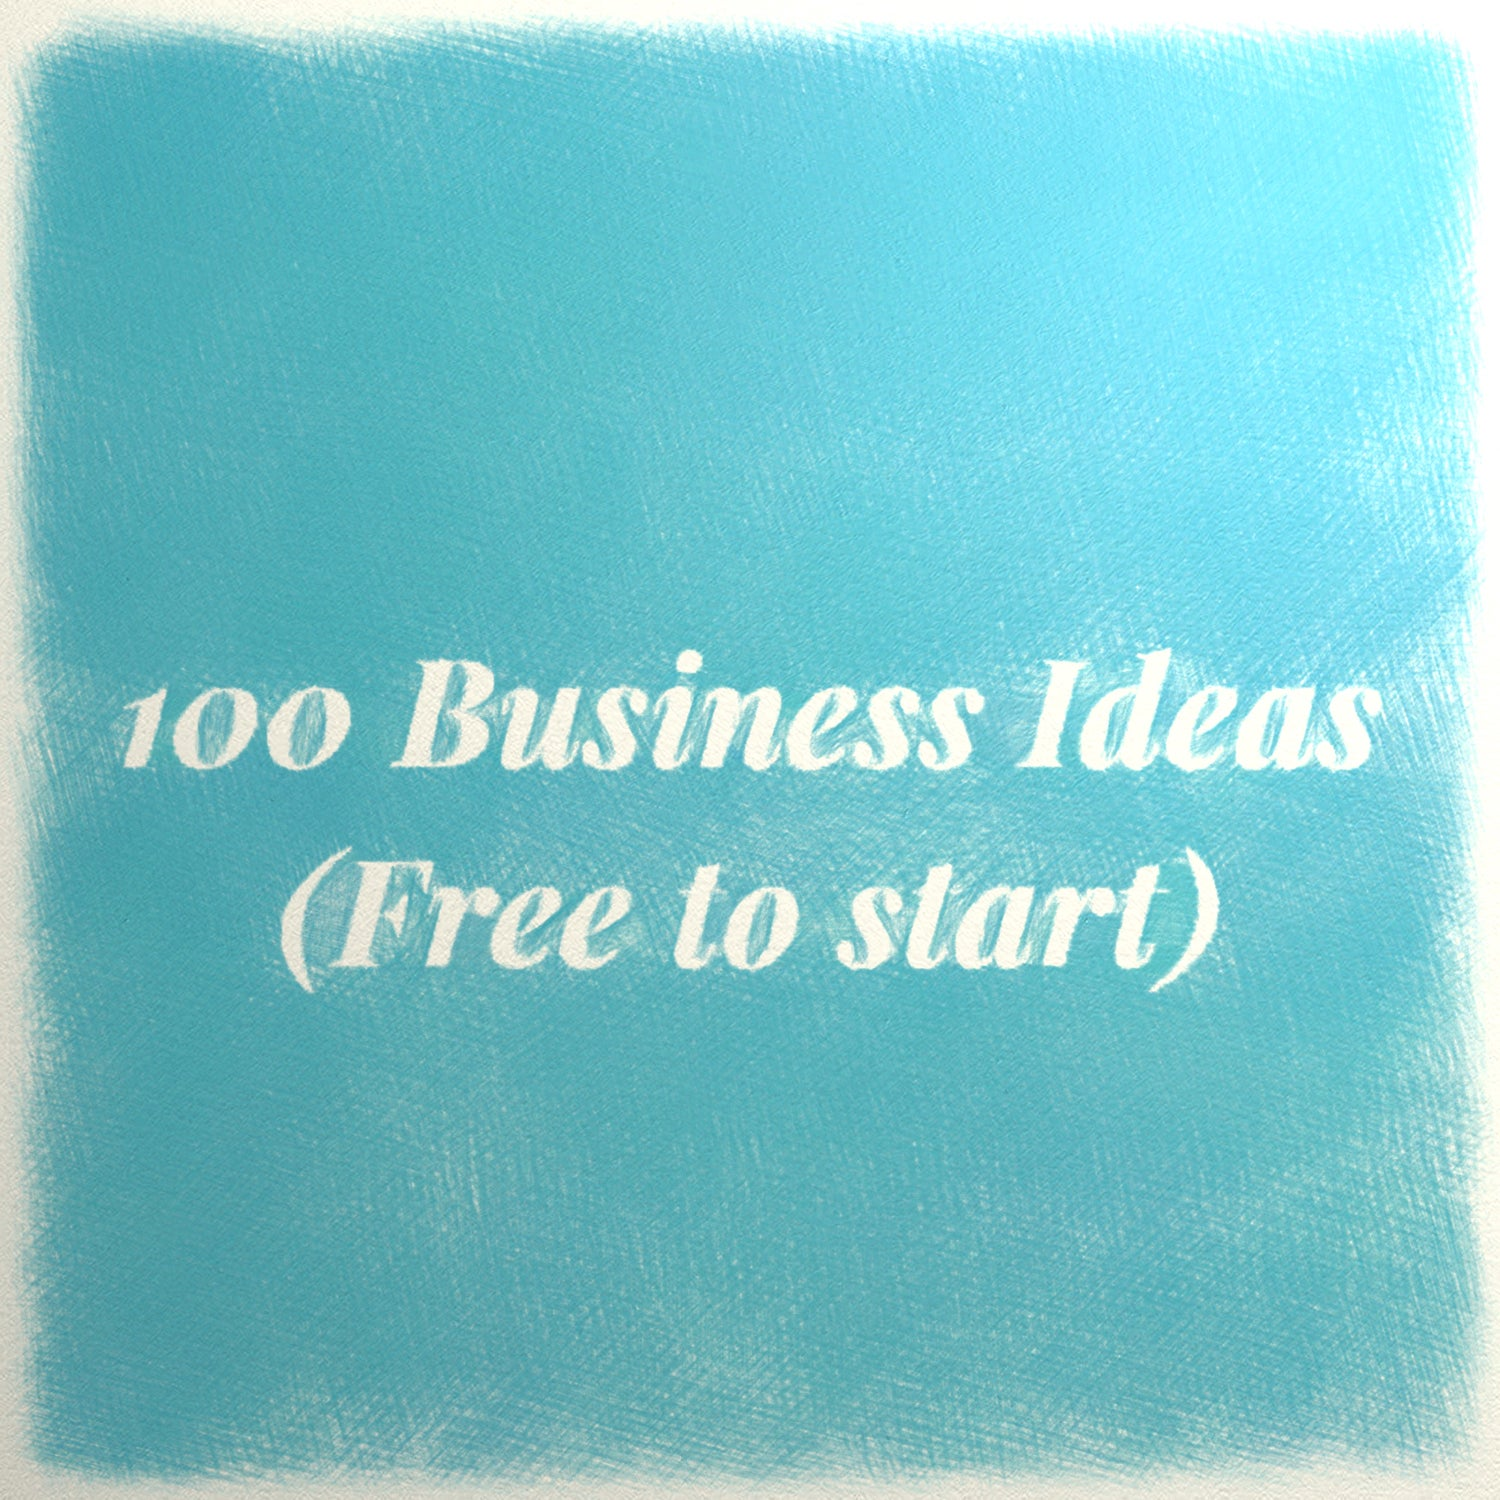 Image of 100 Business Ideas (free to start)